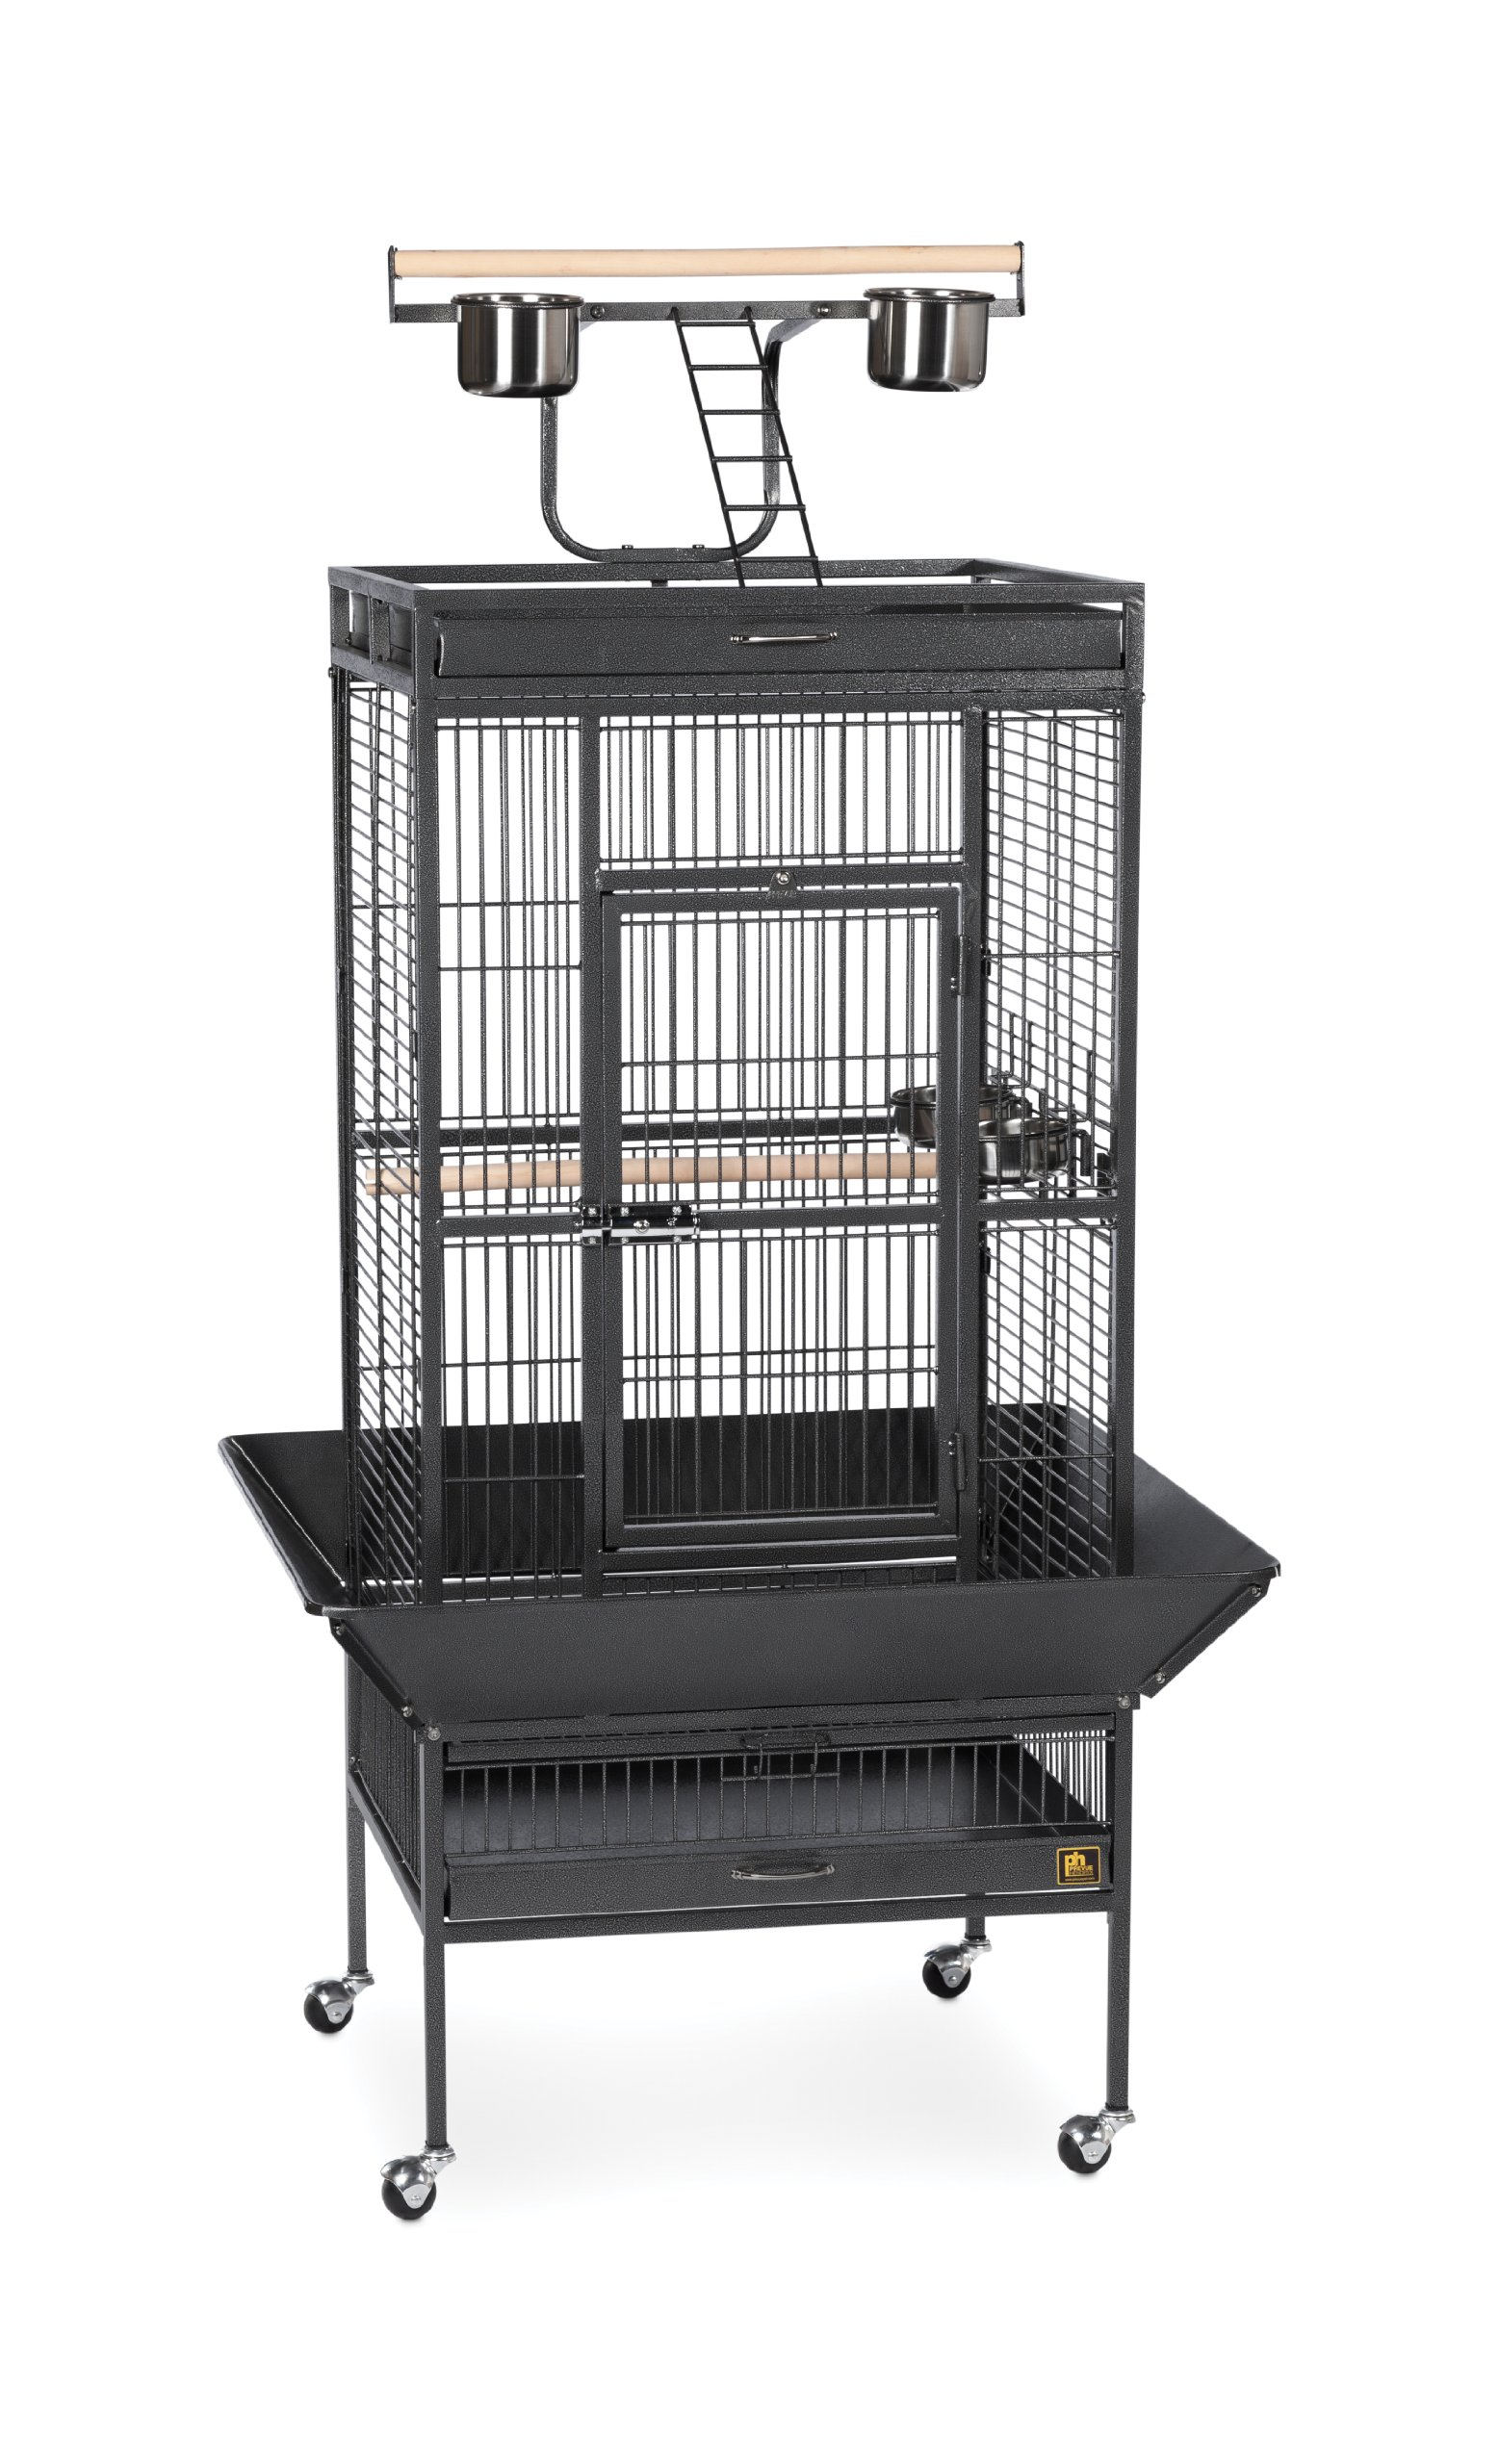 Prevue Hendryx 3152BLK Pet Products Wrought Iron Select Bird Cage, Black Hammertone